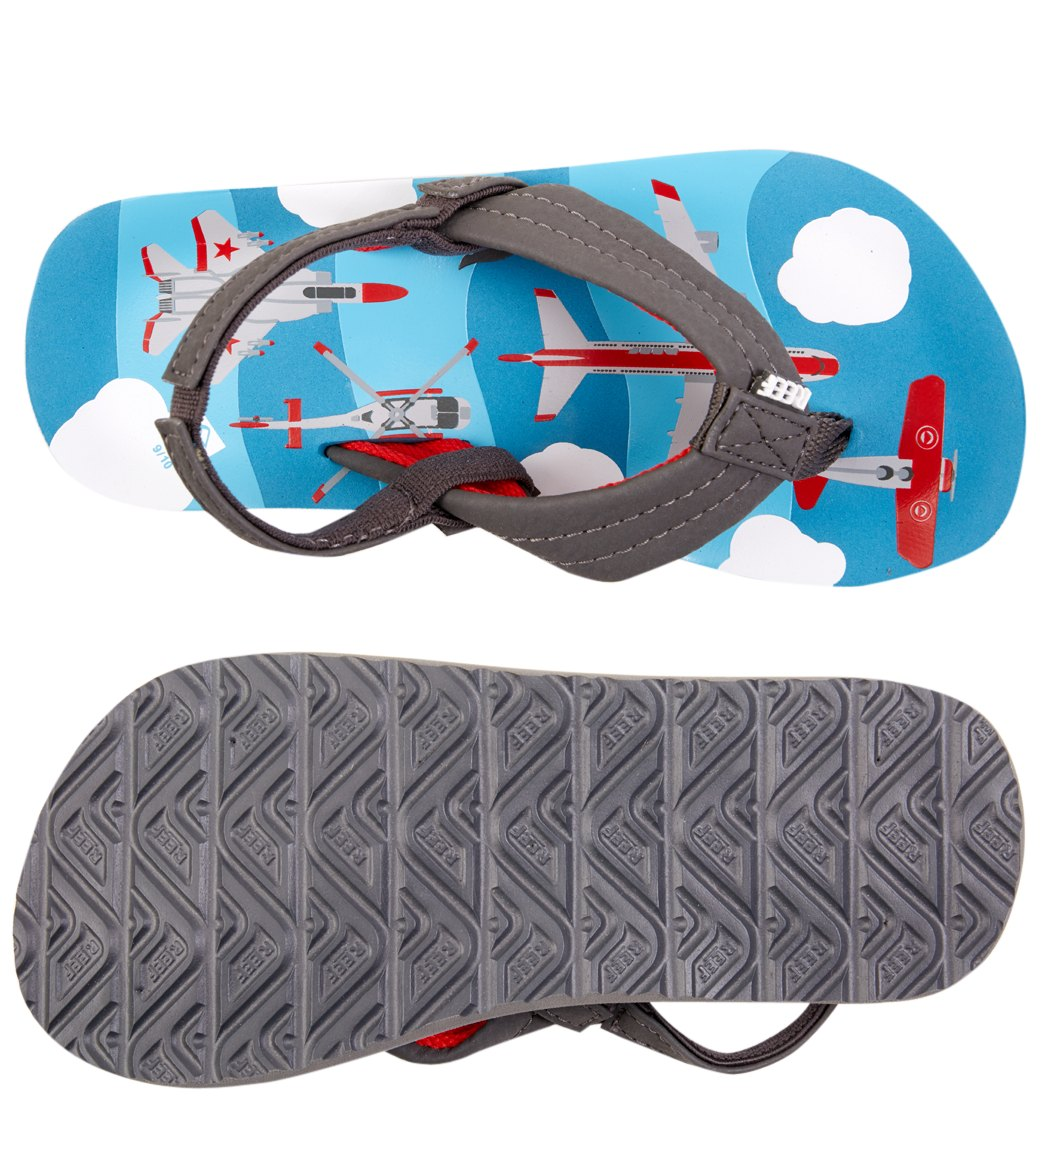 679c0e3bc Reef Boys  Ahi Sandal at SwimOutlet.com